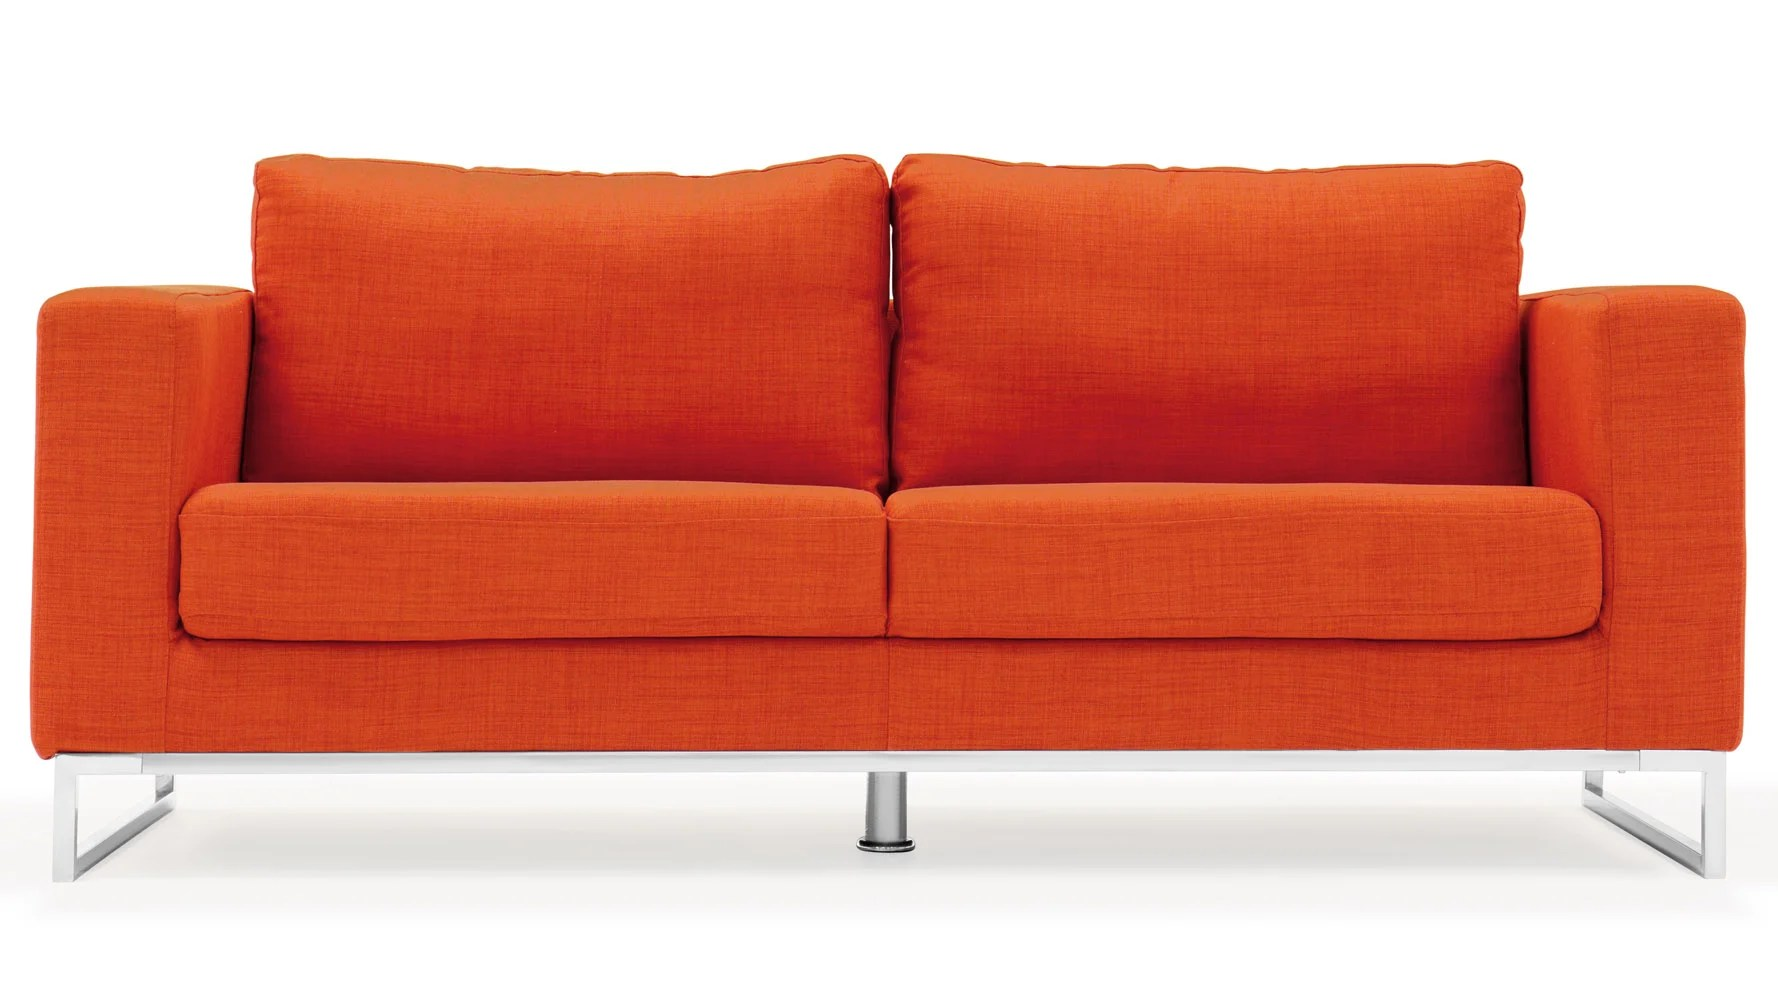 Sofa Orange Modern Orange Fabric Upholstered 2 Piece Sofa Set With